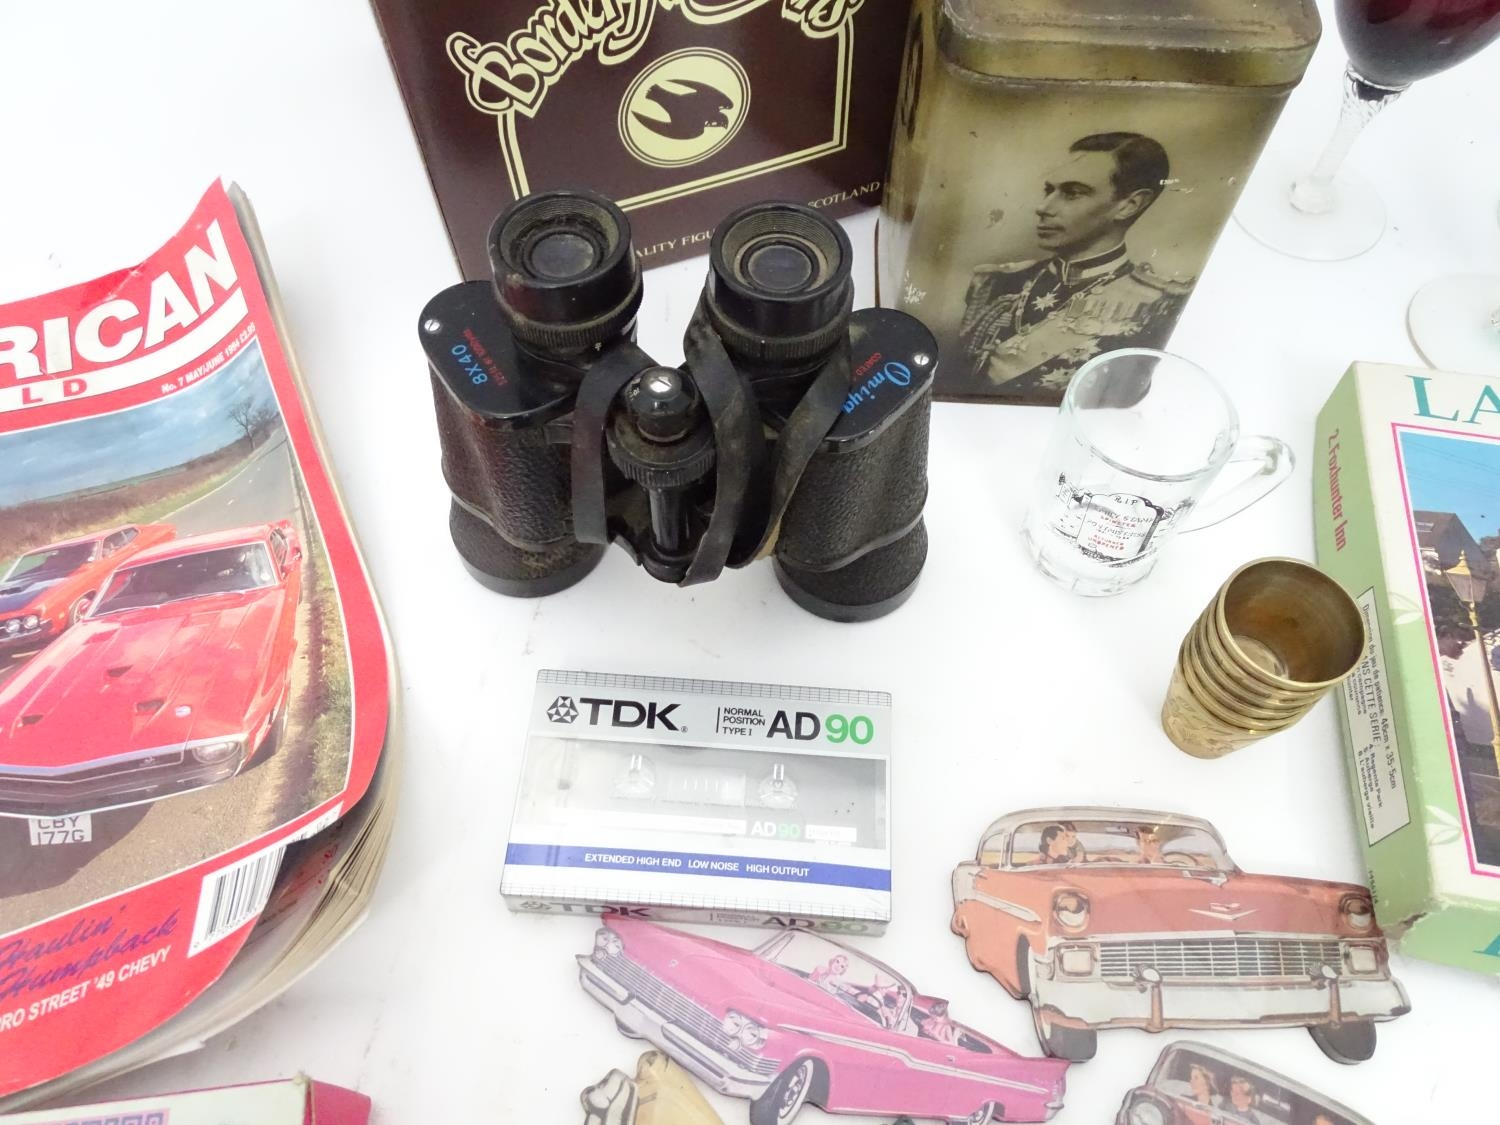 A box of miscellaneous to include novelty phone, drinking glasses, wine glasses, binoculars etc. - Image 8 of 12